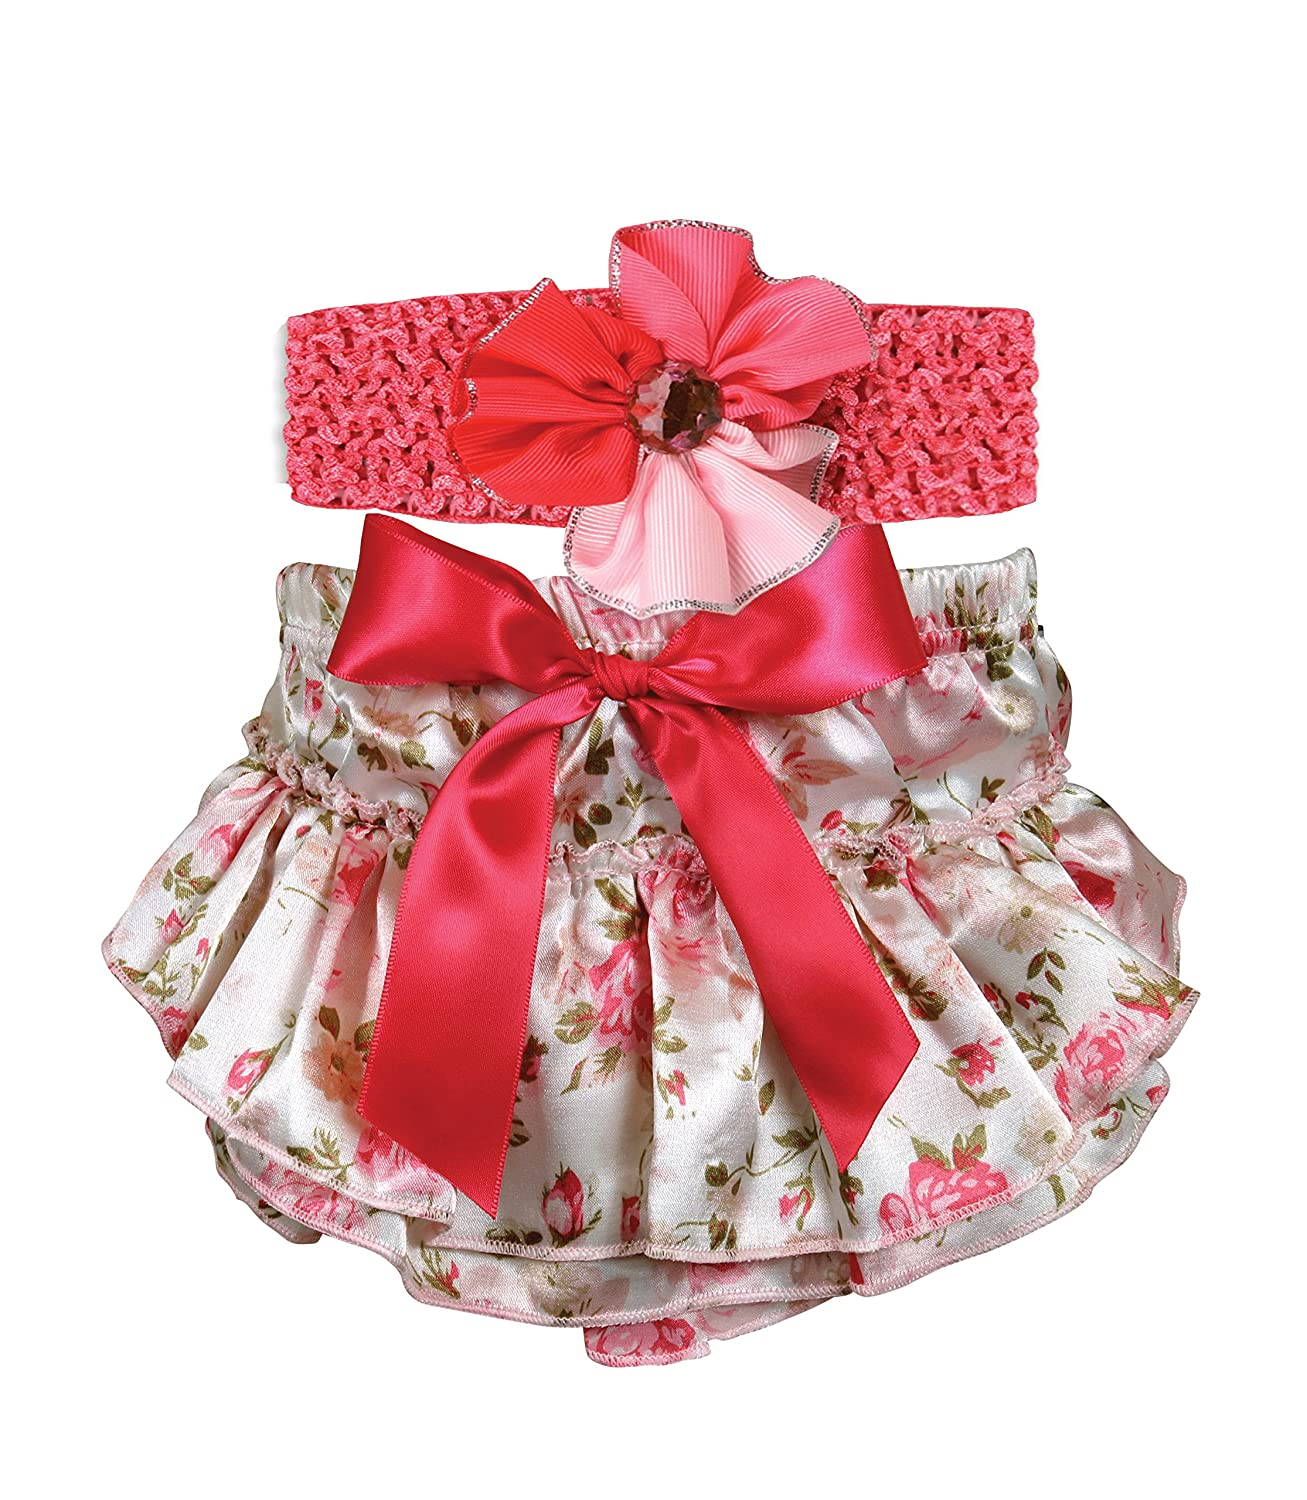 Stephan Baby Pink and Ruffled Roses, Diaper Cover and Curly Band Gift Set, Pink Roses, 6-12 Months by Stephan Baby B00JHML7W2, 富山のしろえびせんべい ささら屋:6fac334c --- itxassou.fr